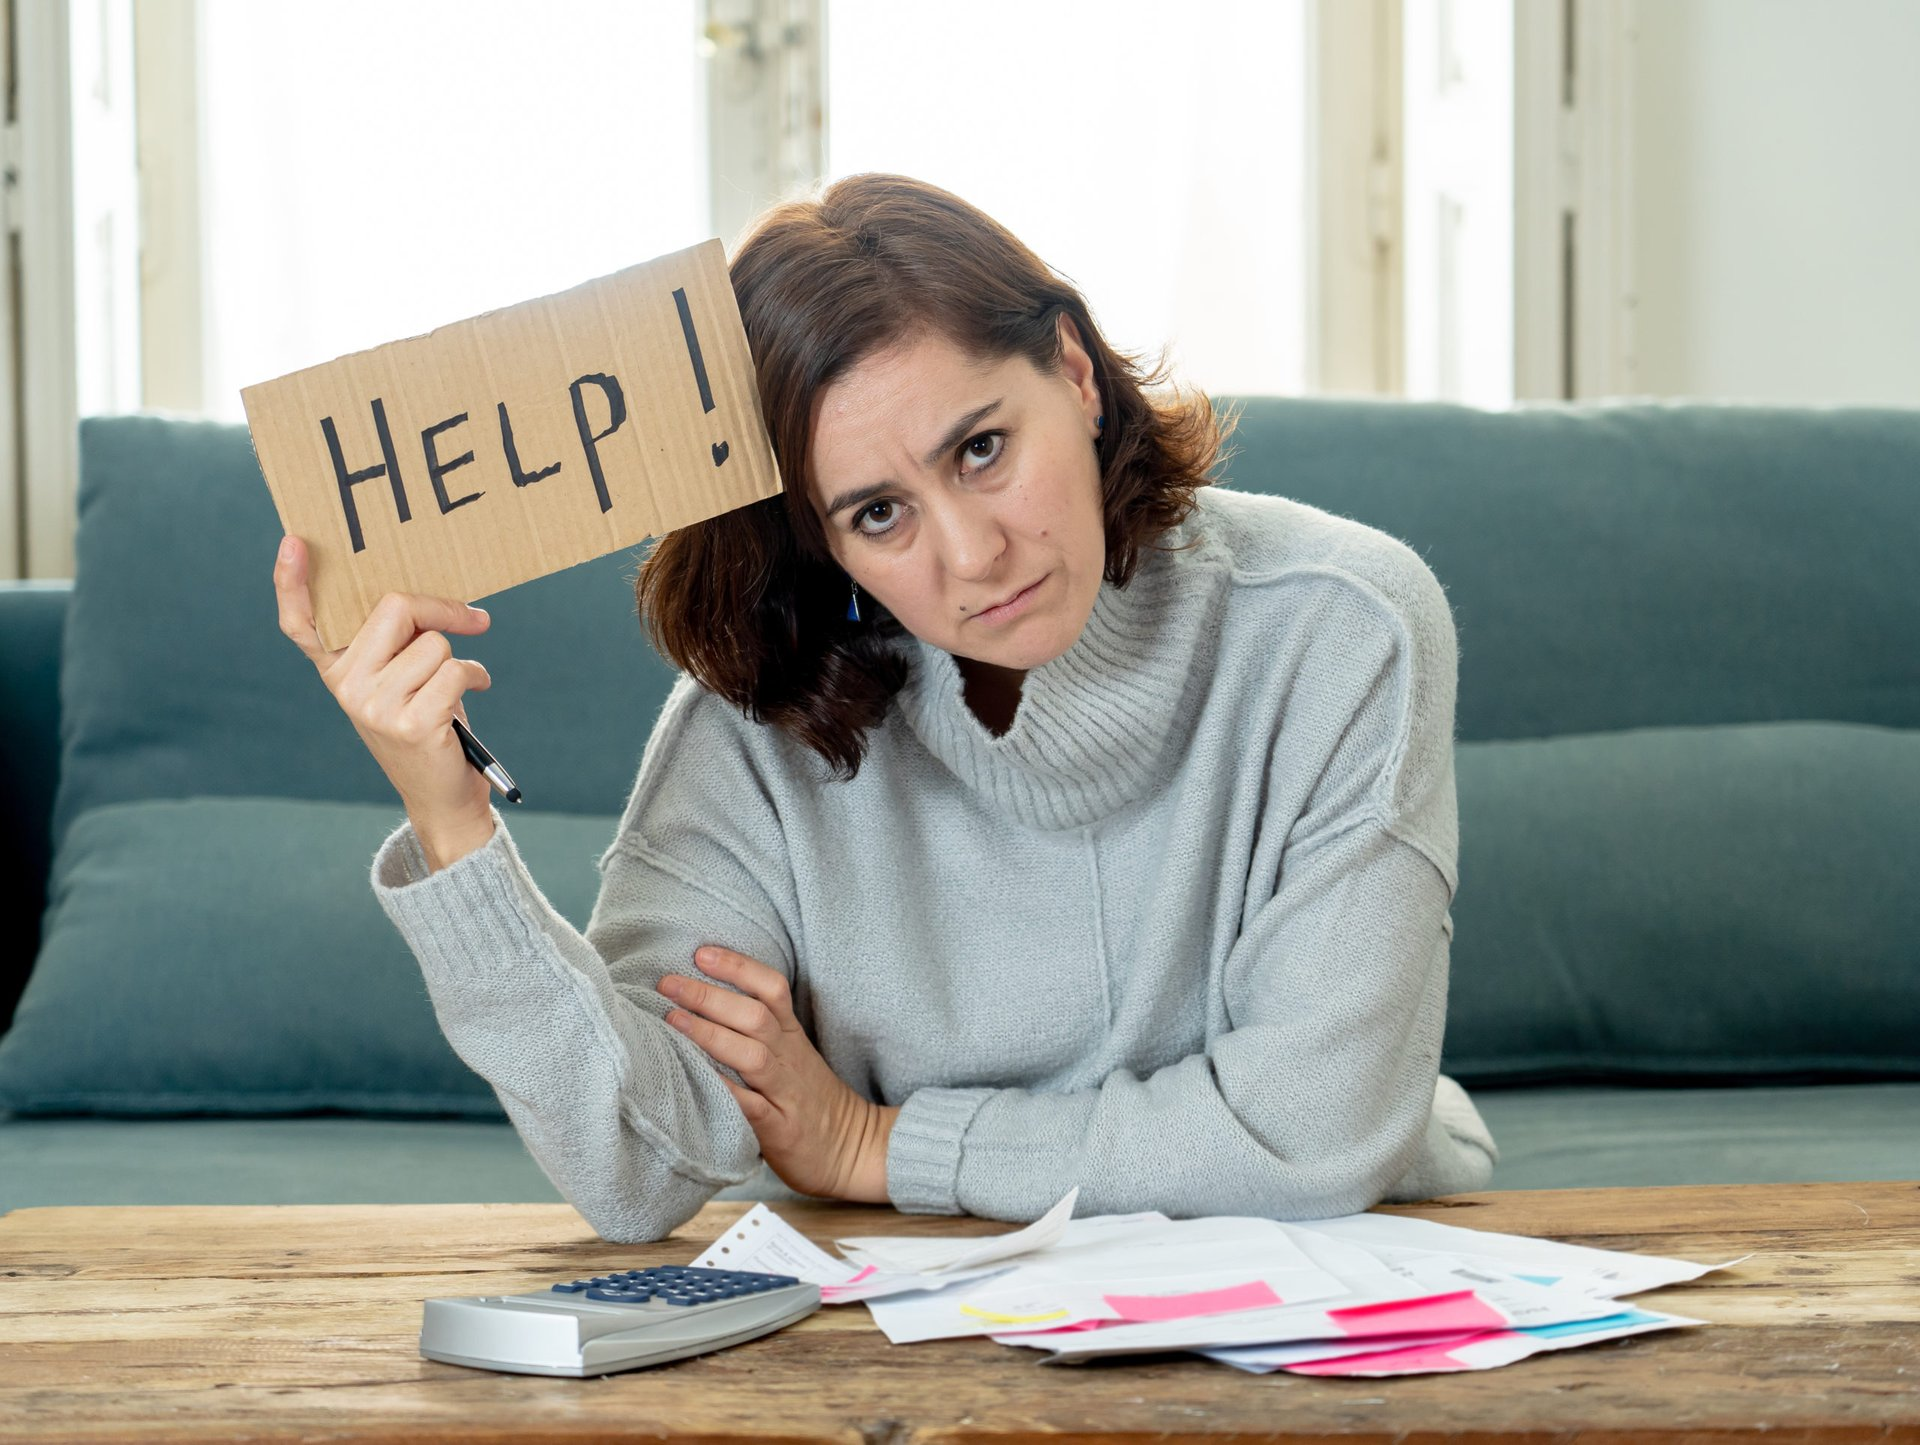 Woman with Bills, Help Sign